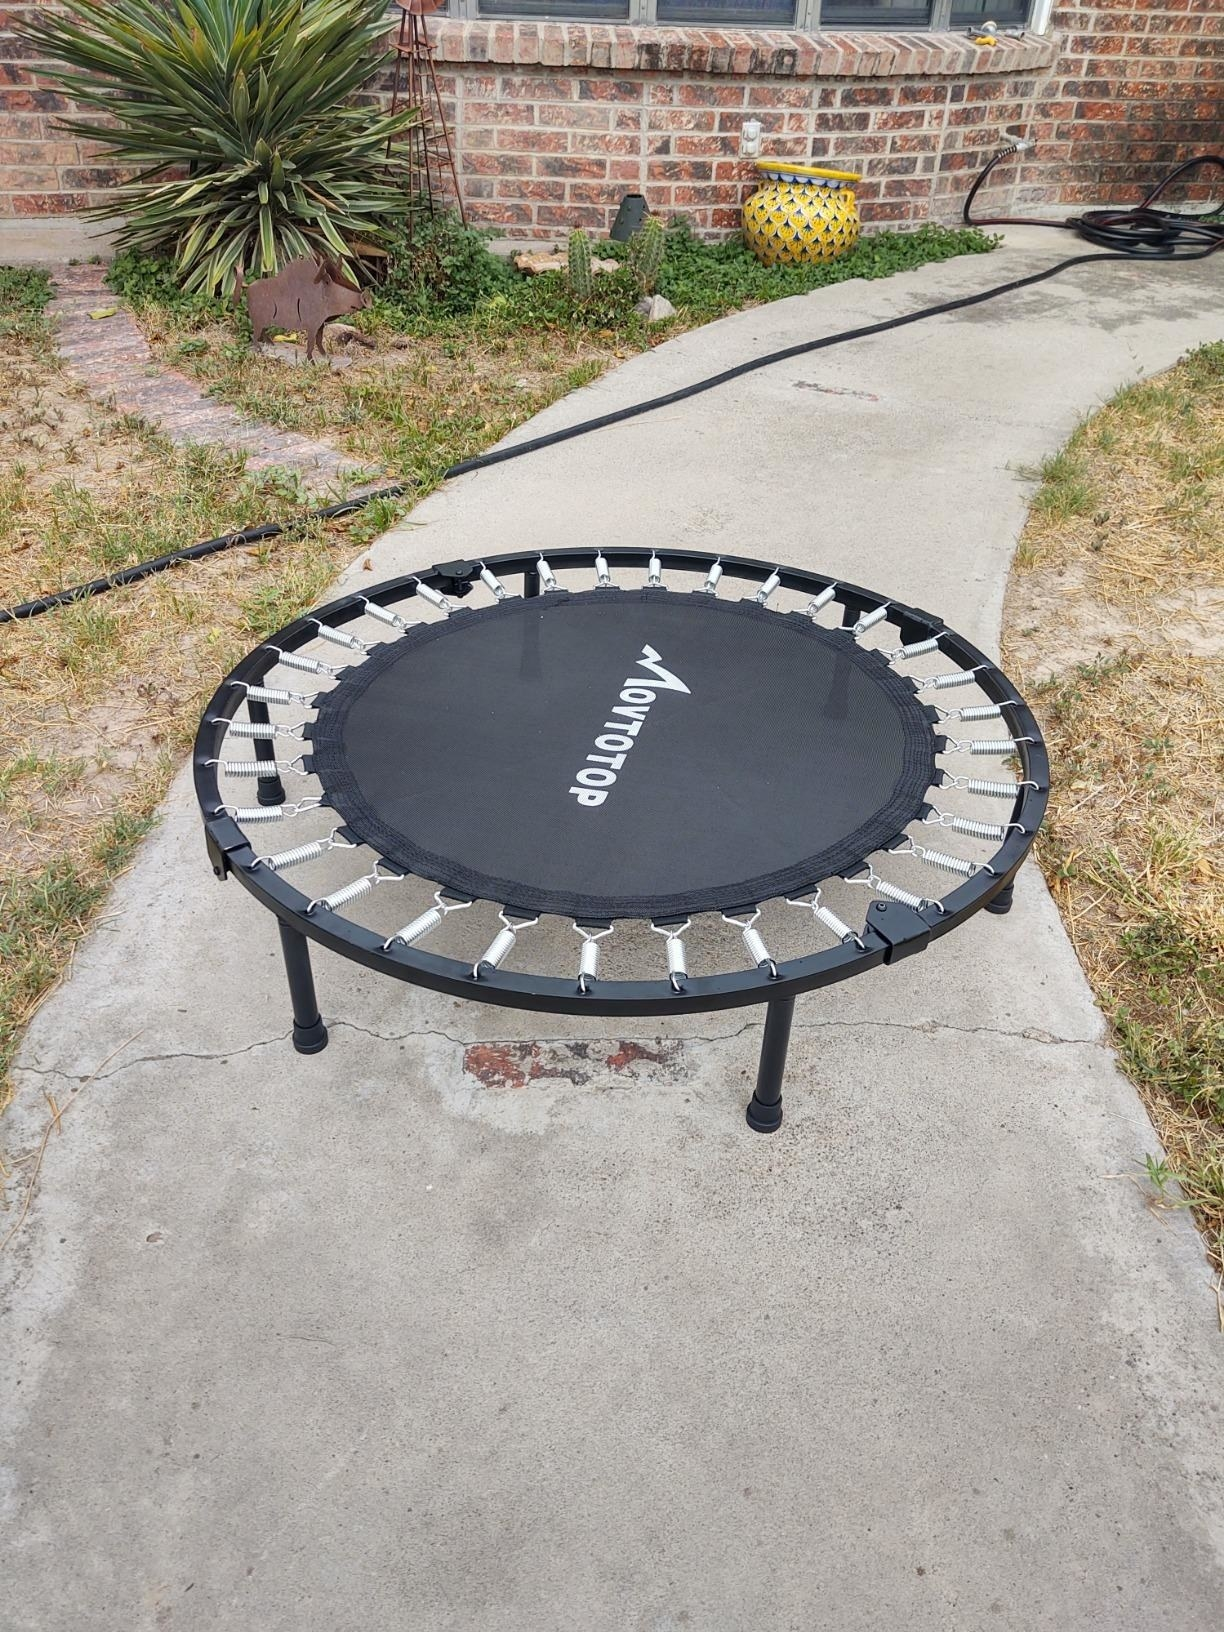 A reviewer showing the mini trampoline with six legs